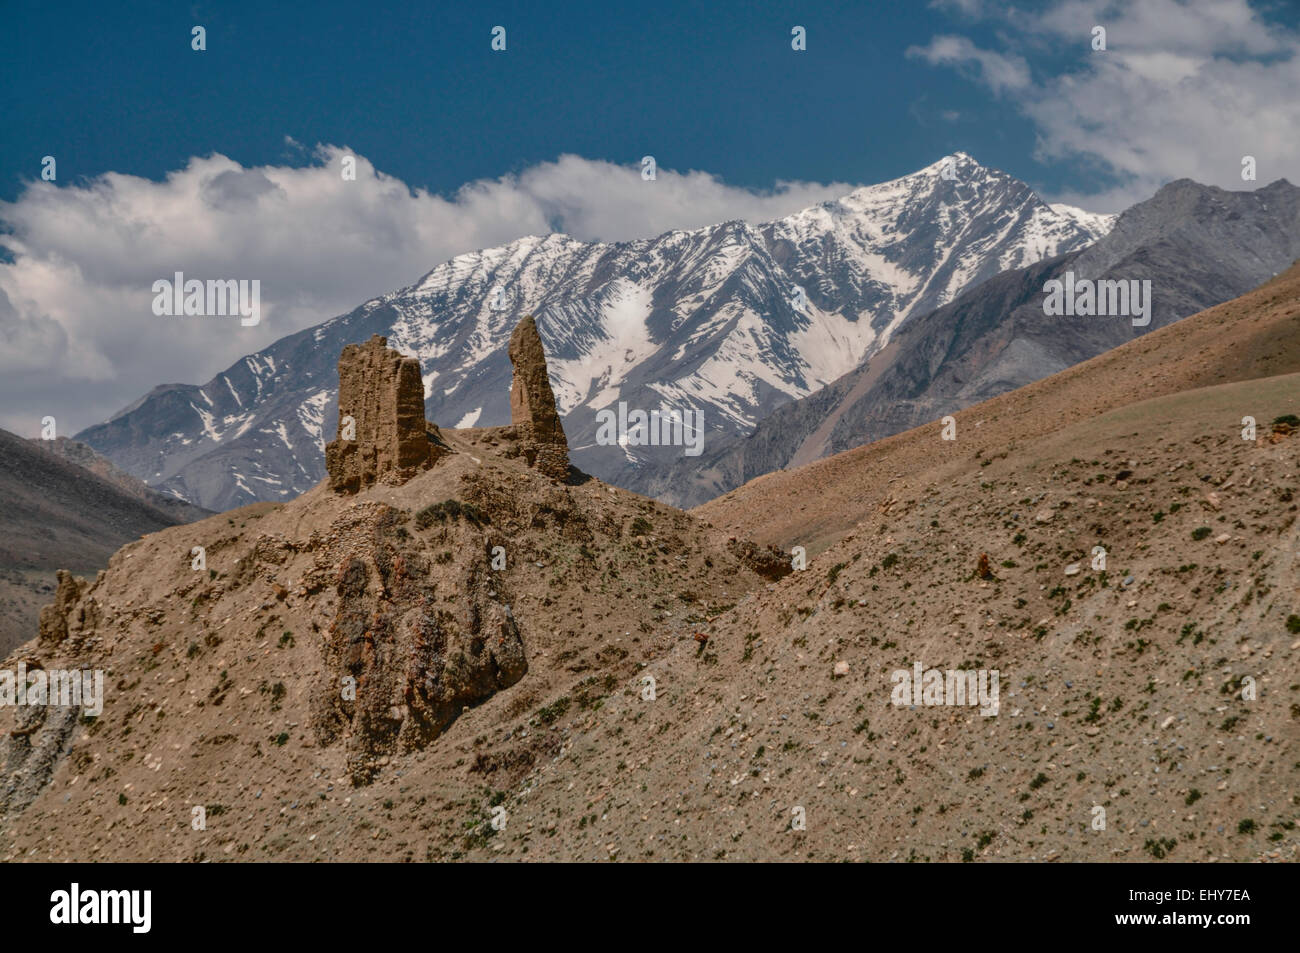 Picturesque old ruins of buddhist shrines in Himalayas mountains in Nepal - Stock Image